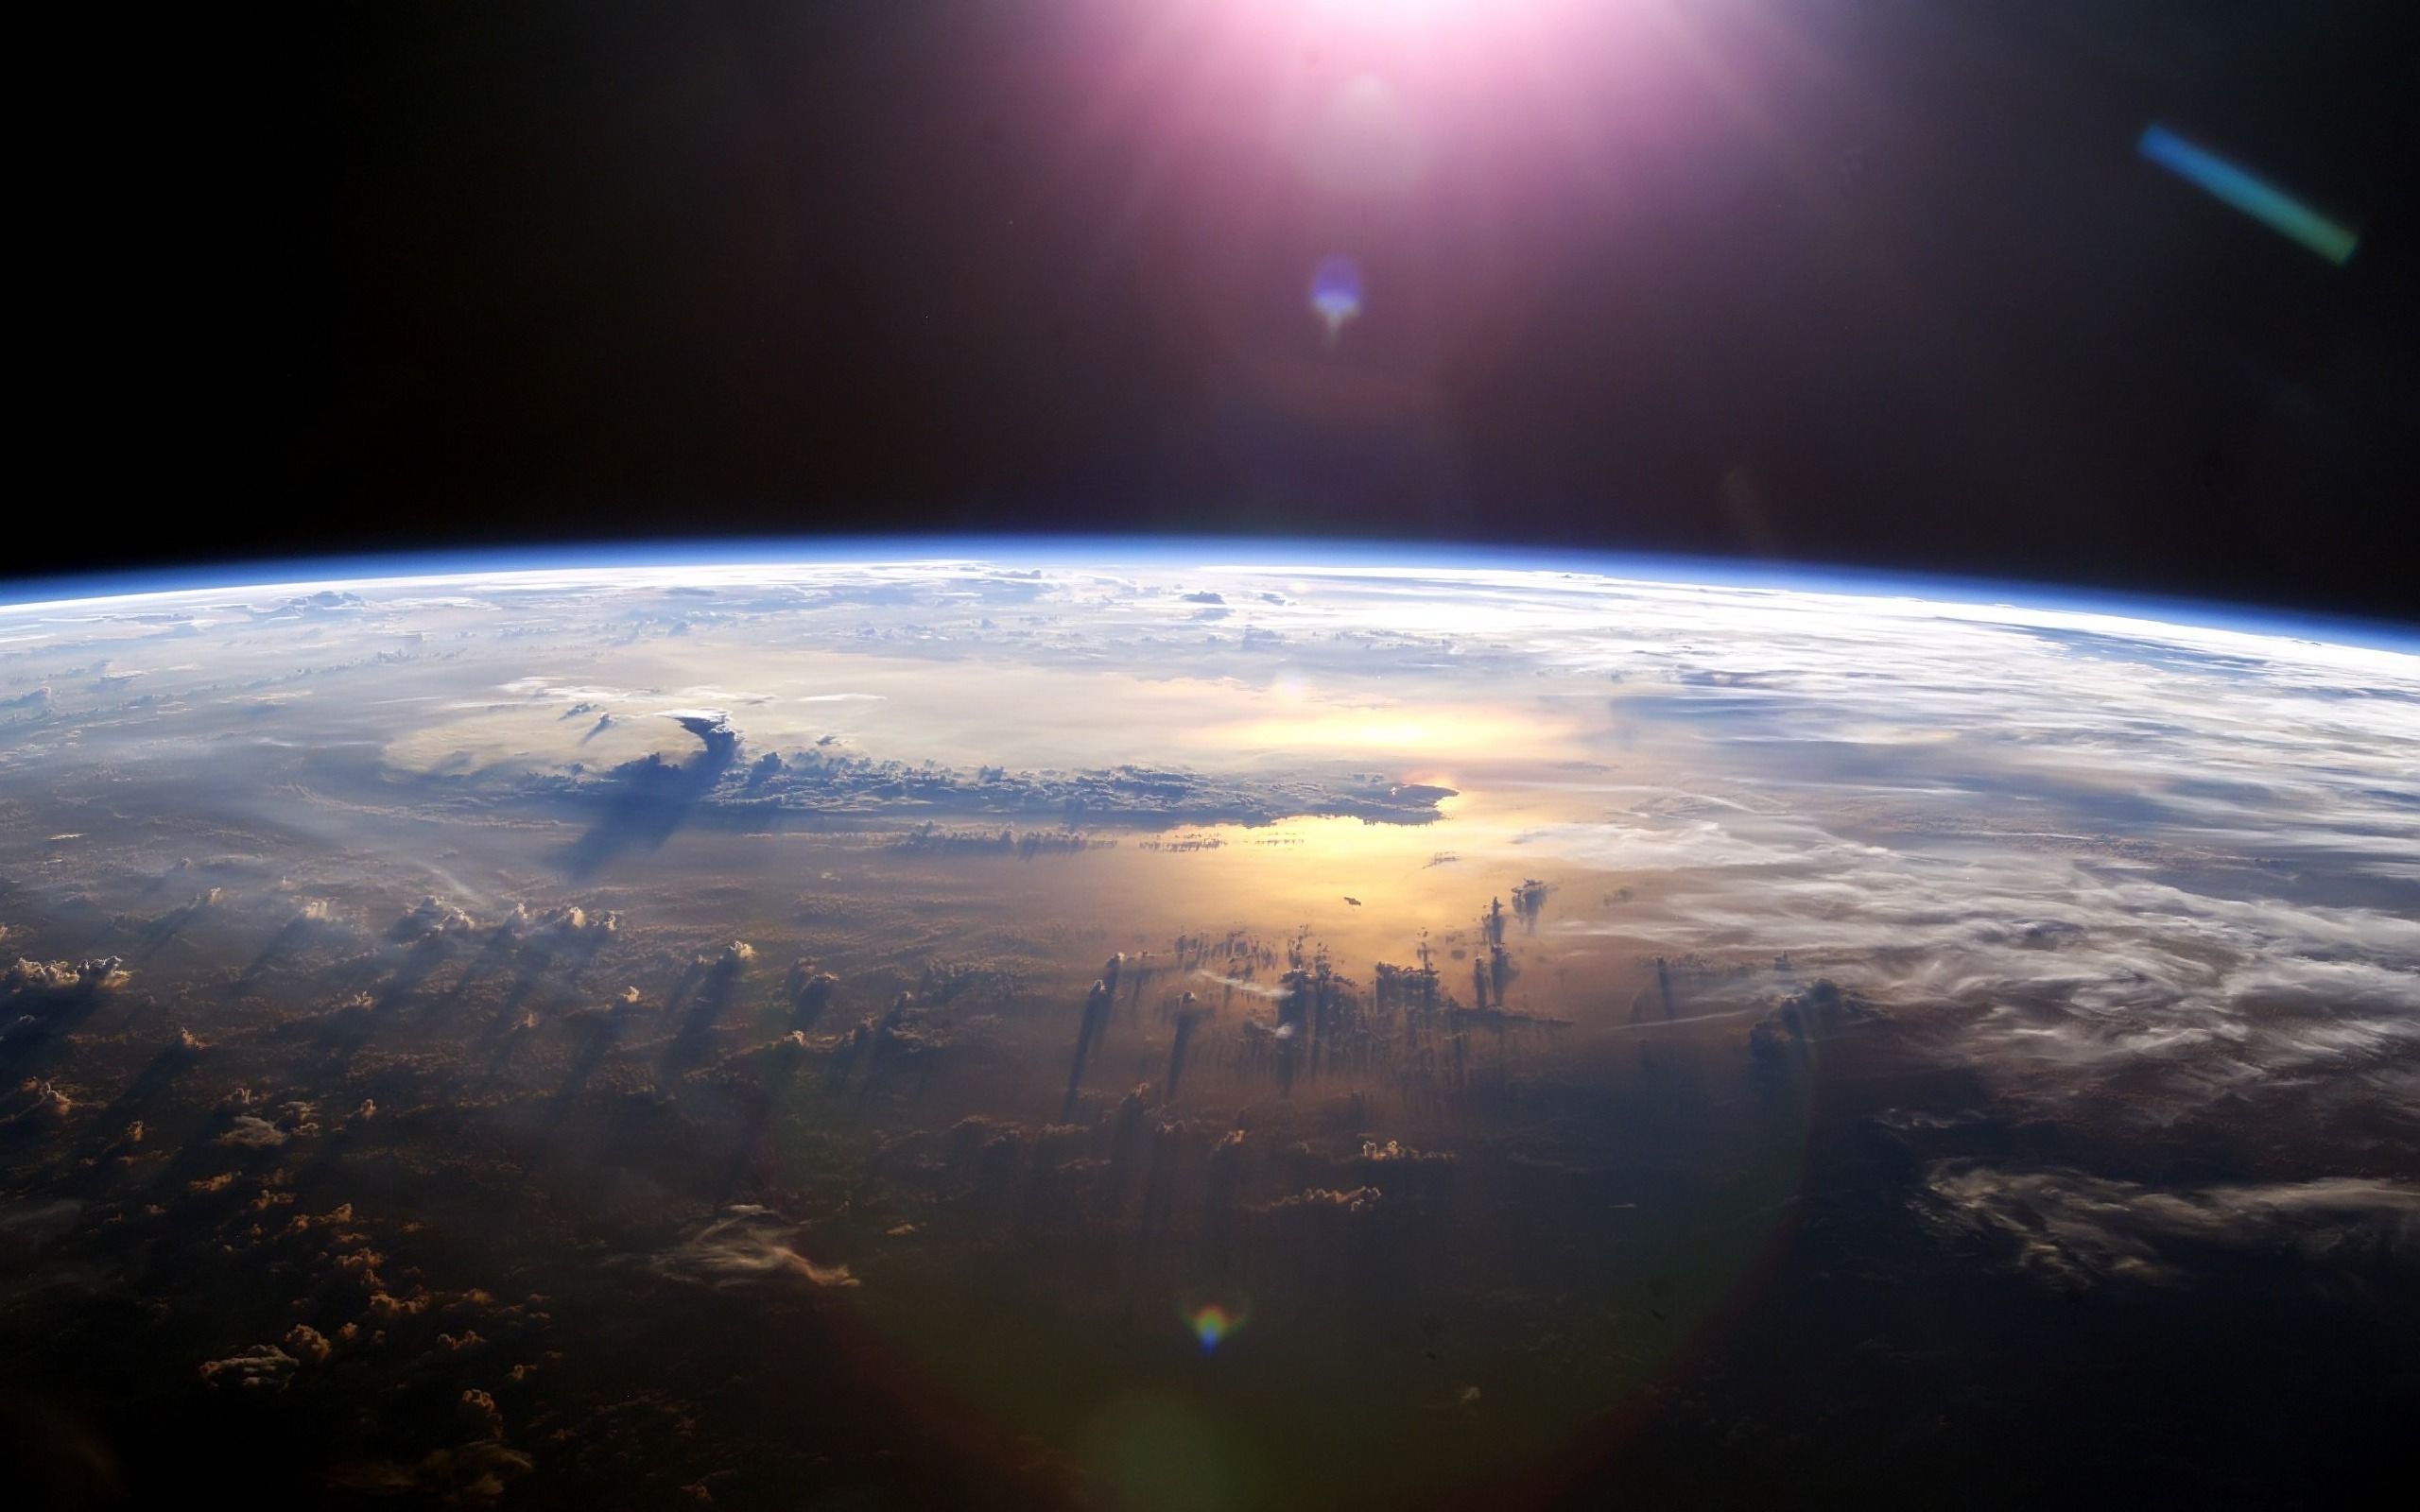 Planet Earth Wallpaper Wallpapers in jpg format for free download